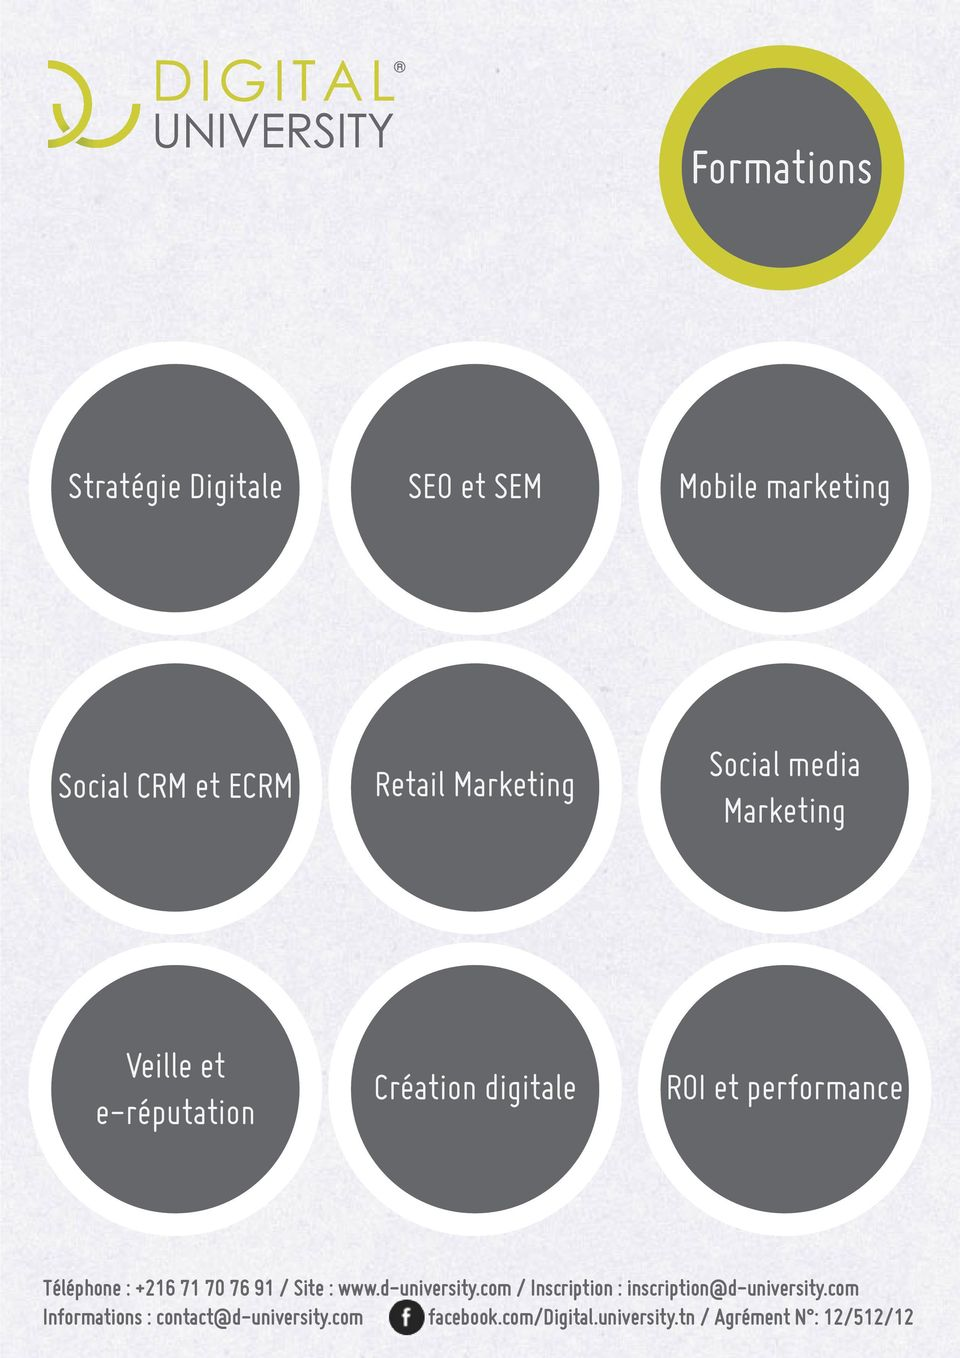 Marketing Social media Marketing Veille et